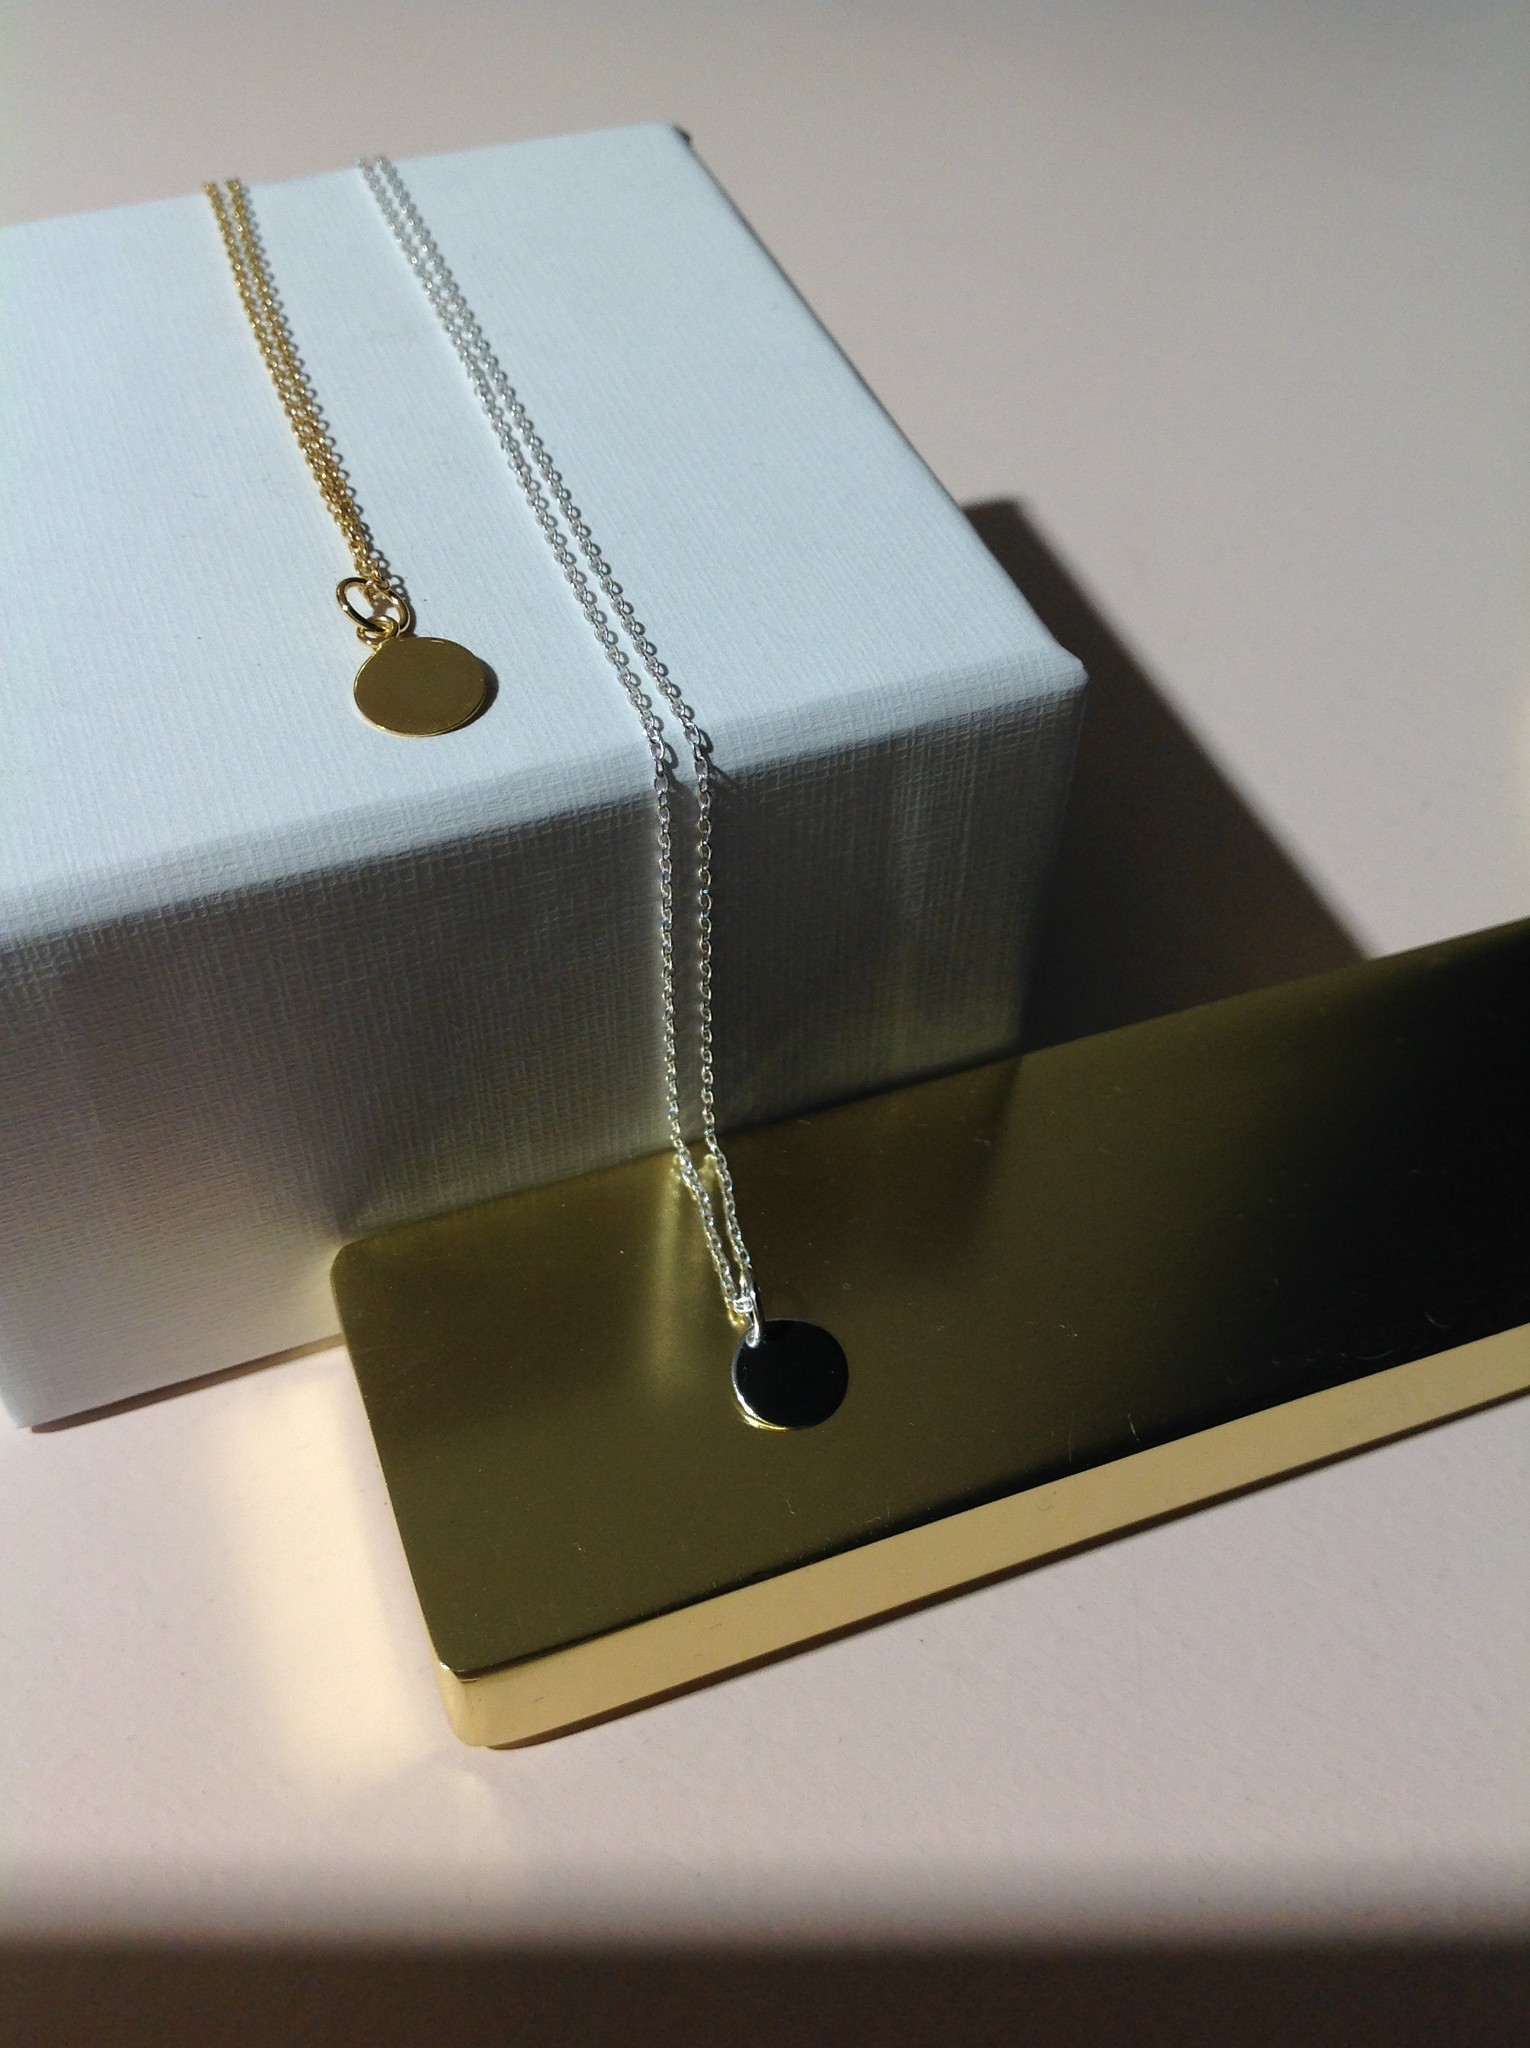 Delicate chain with pendant made of 925 sterling silver-2